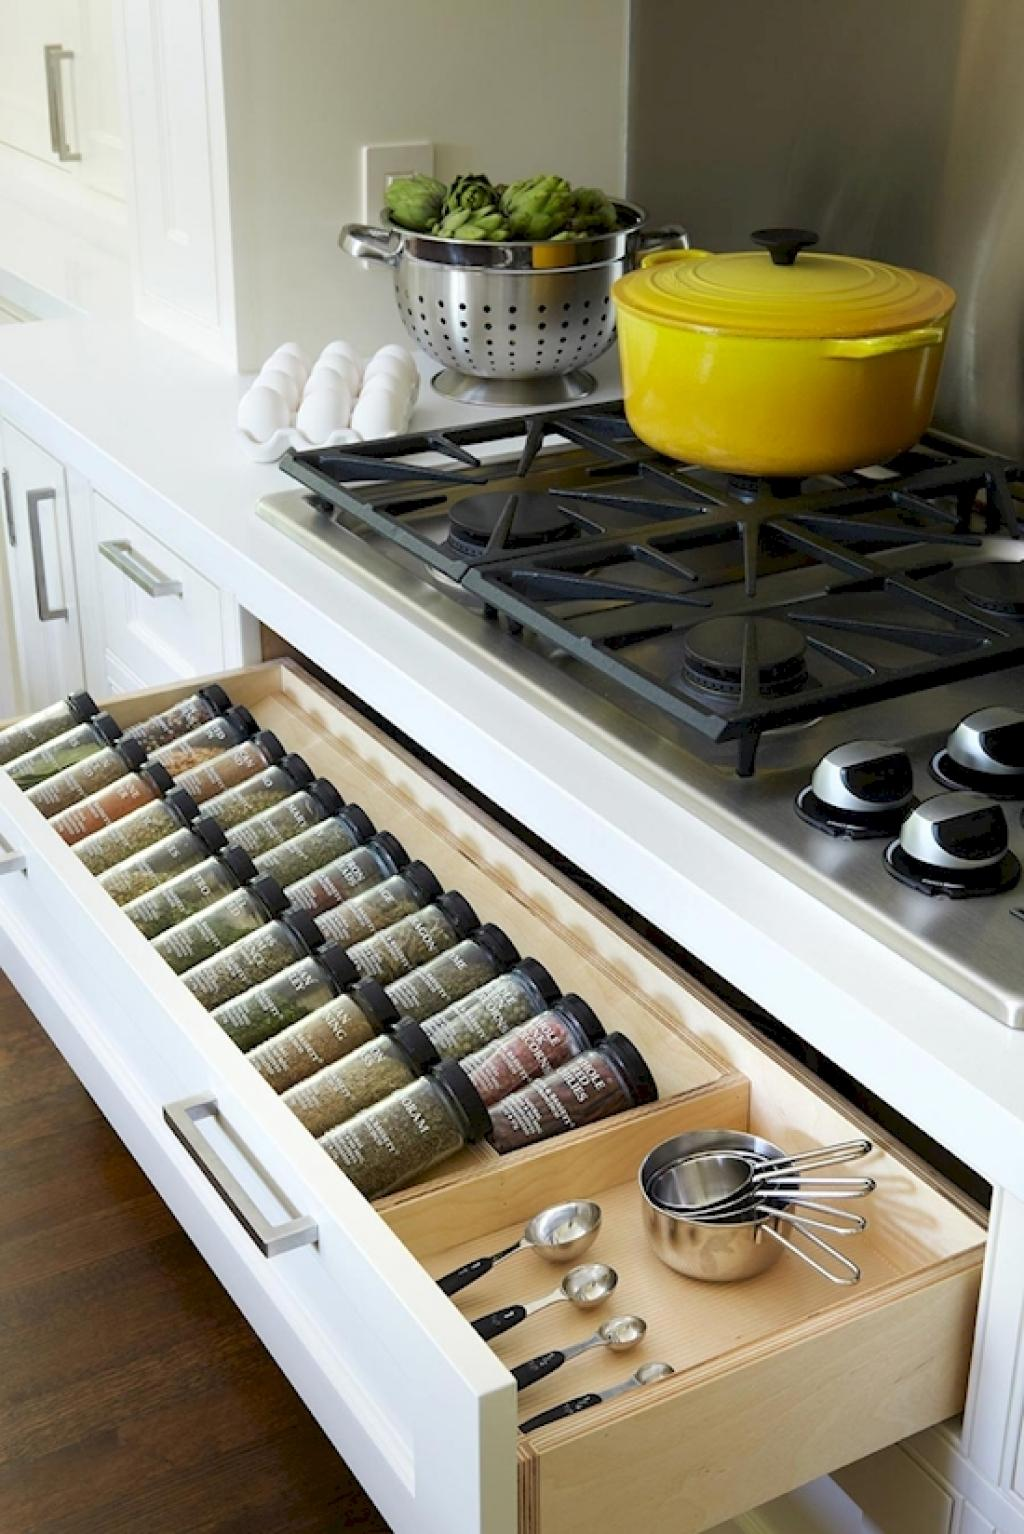 18 Functional Kitchen Storage and Organization Ideas